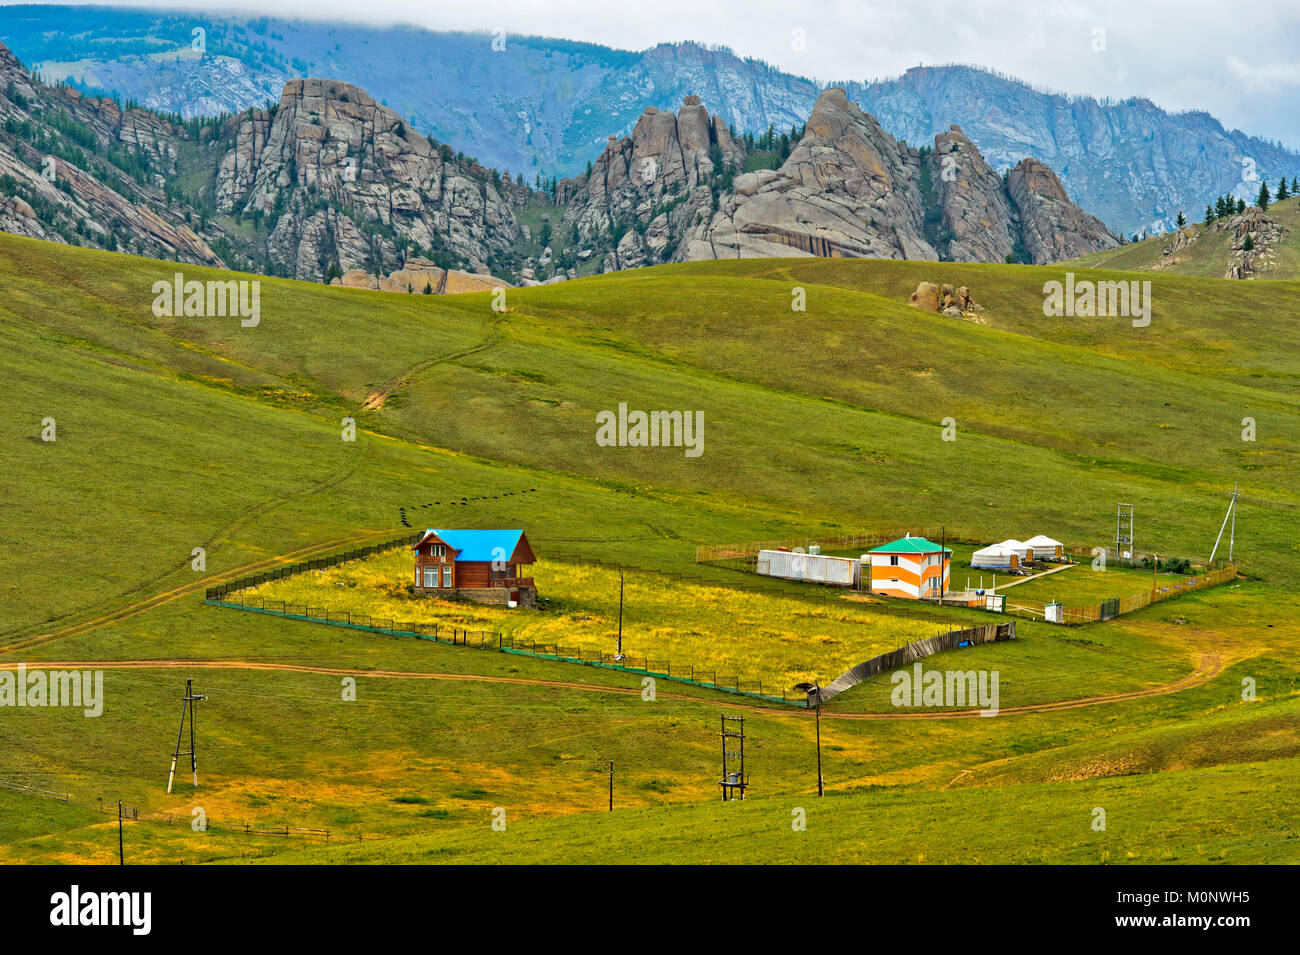 Landscape with dacha and yurts,Gorchi-Tereldsch National Park,Mongolia - Stock Image